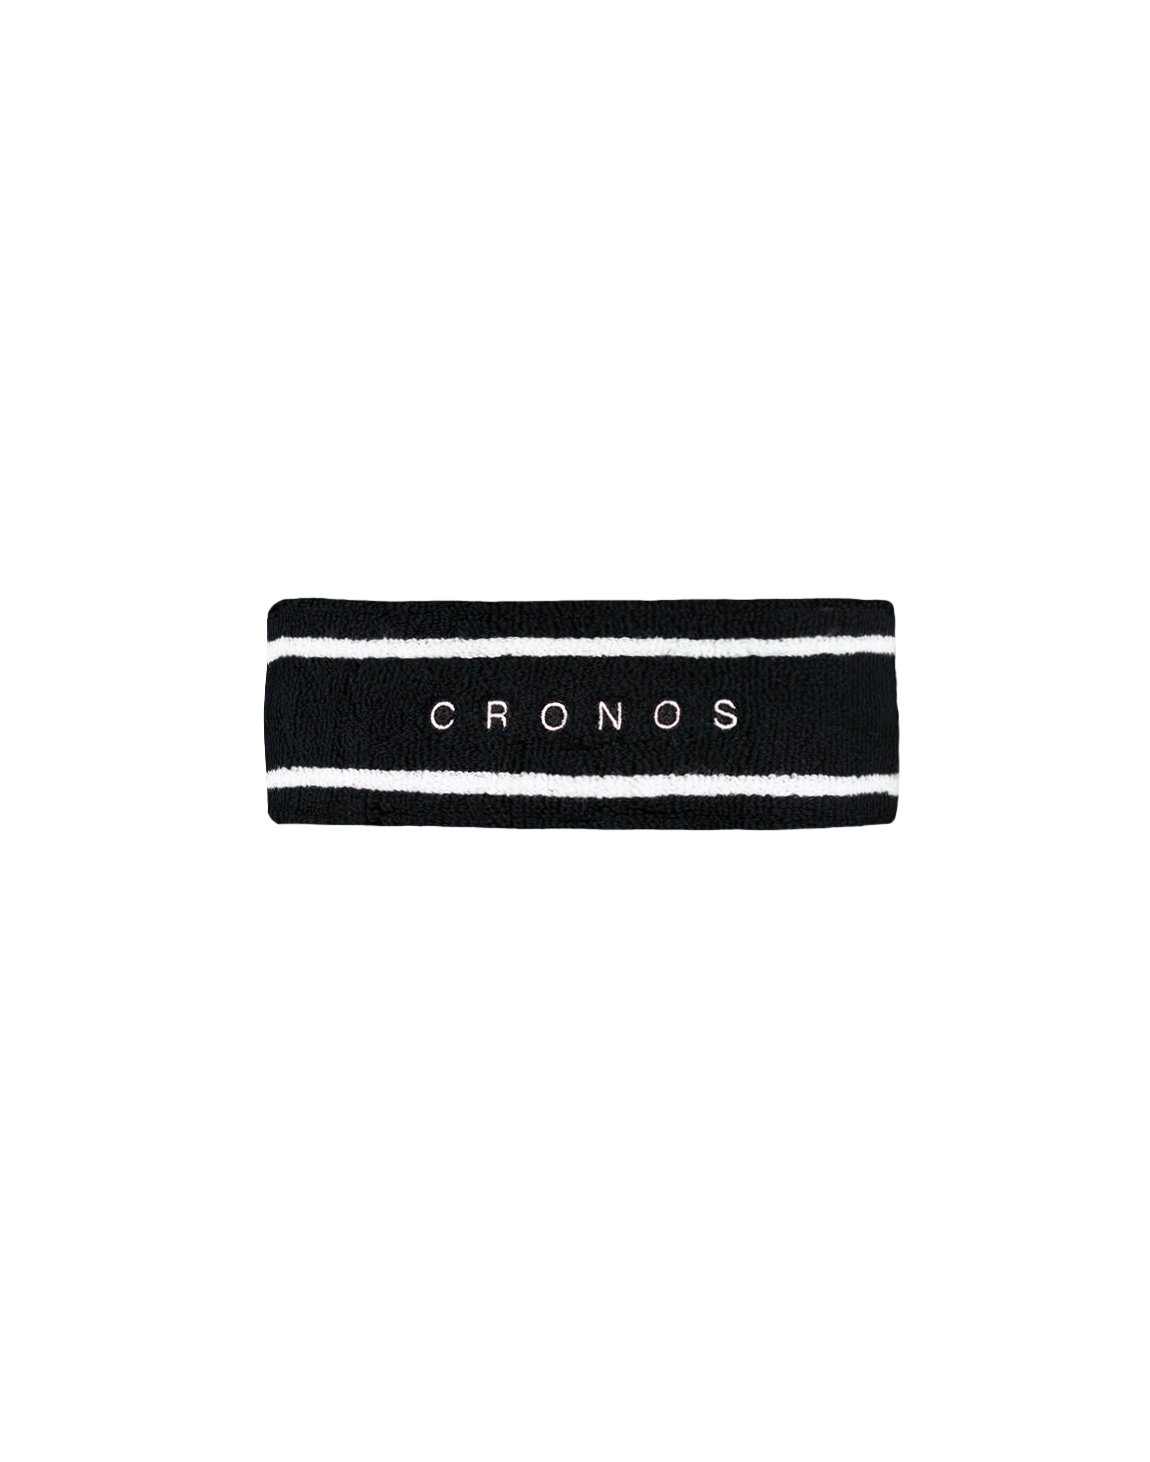 <img class='new_mark_img1' src='https://img.shop-pro.jp/img/new/icons1.gif' style='border:none;display:inline;margin:0px;padding:0px;width:auto;' />CRONOS HEAD BAND【BLACK】